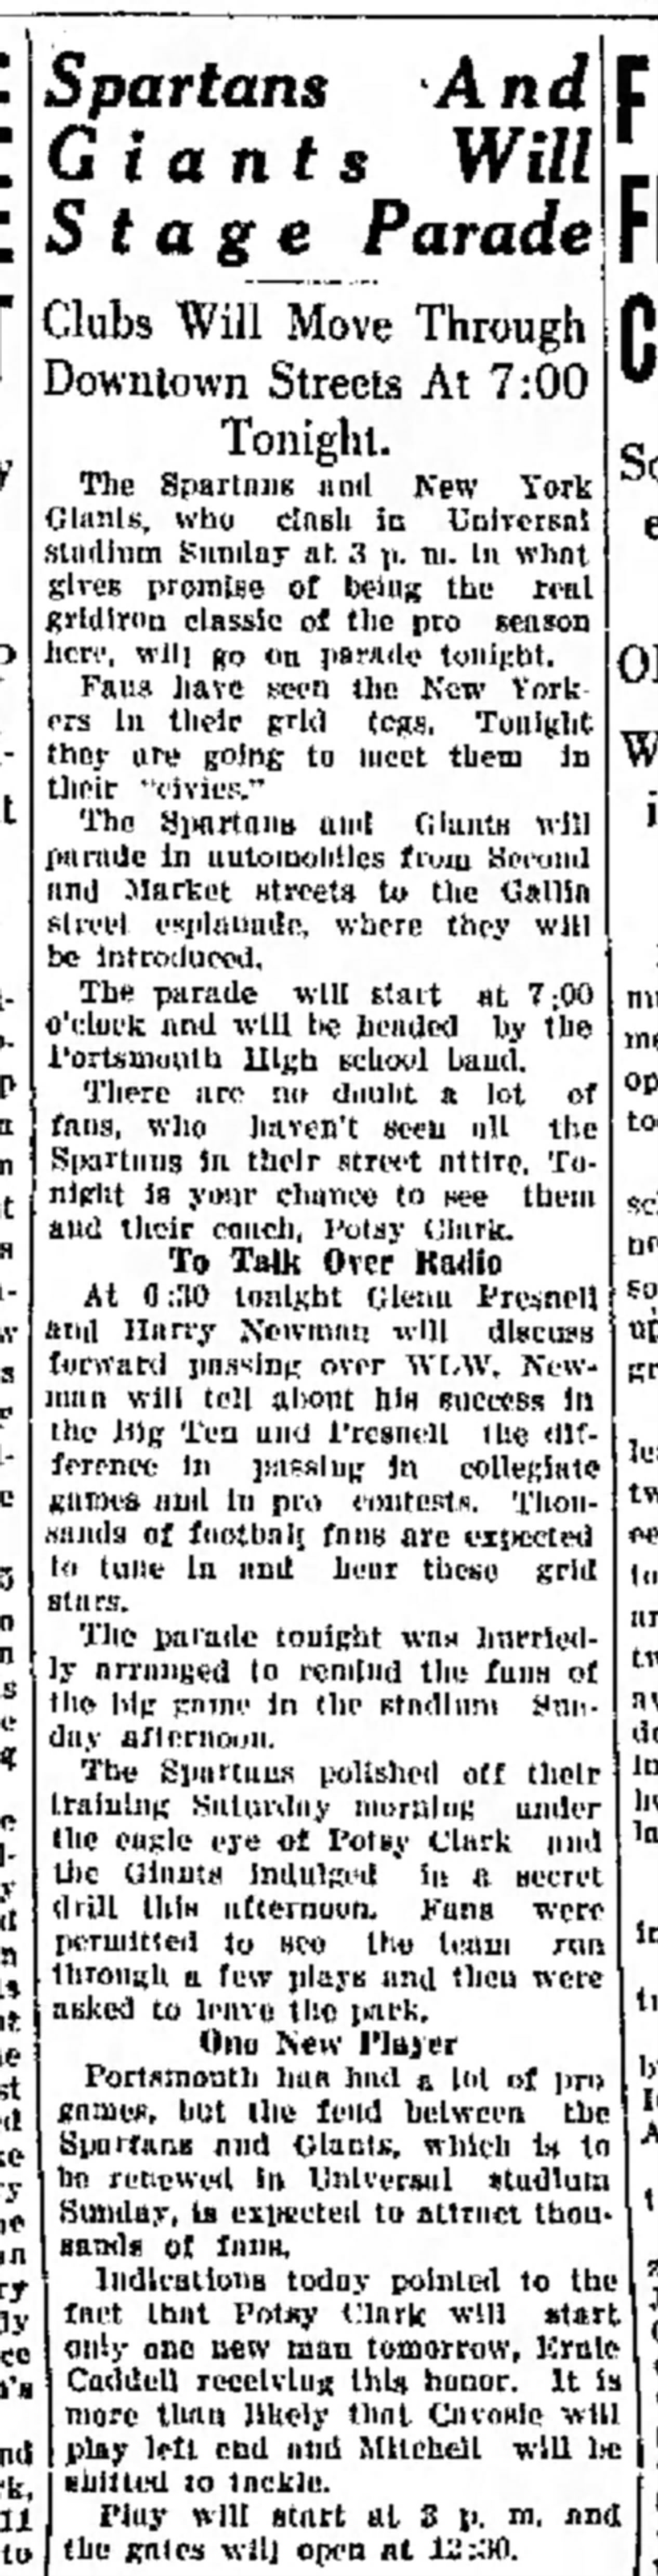 A Portsmouth Daily Times announcement of a parade which may be connected to the game film attached in this entry. Dated September 23, 1933.